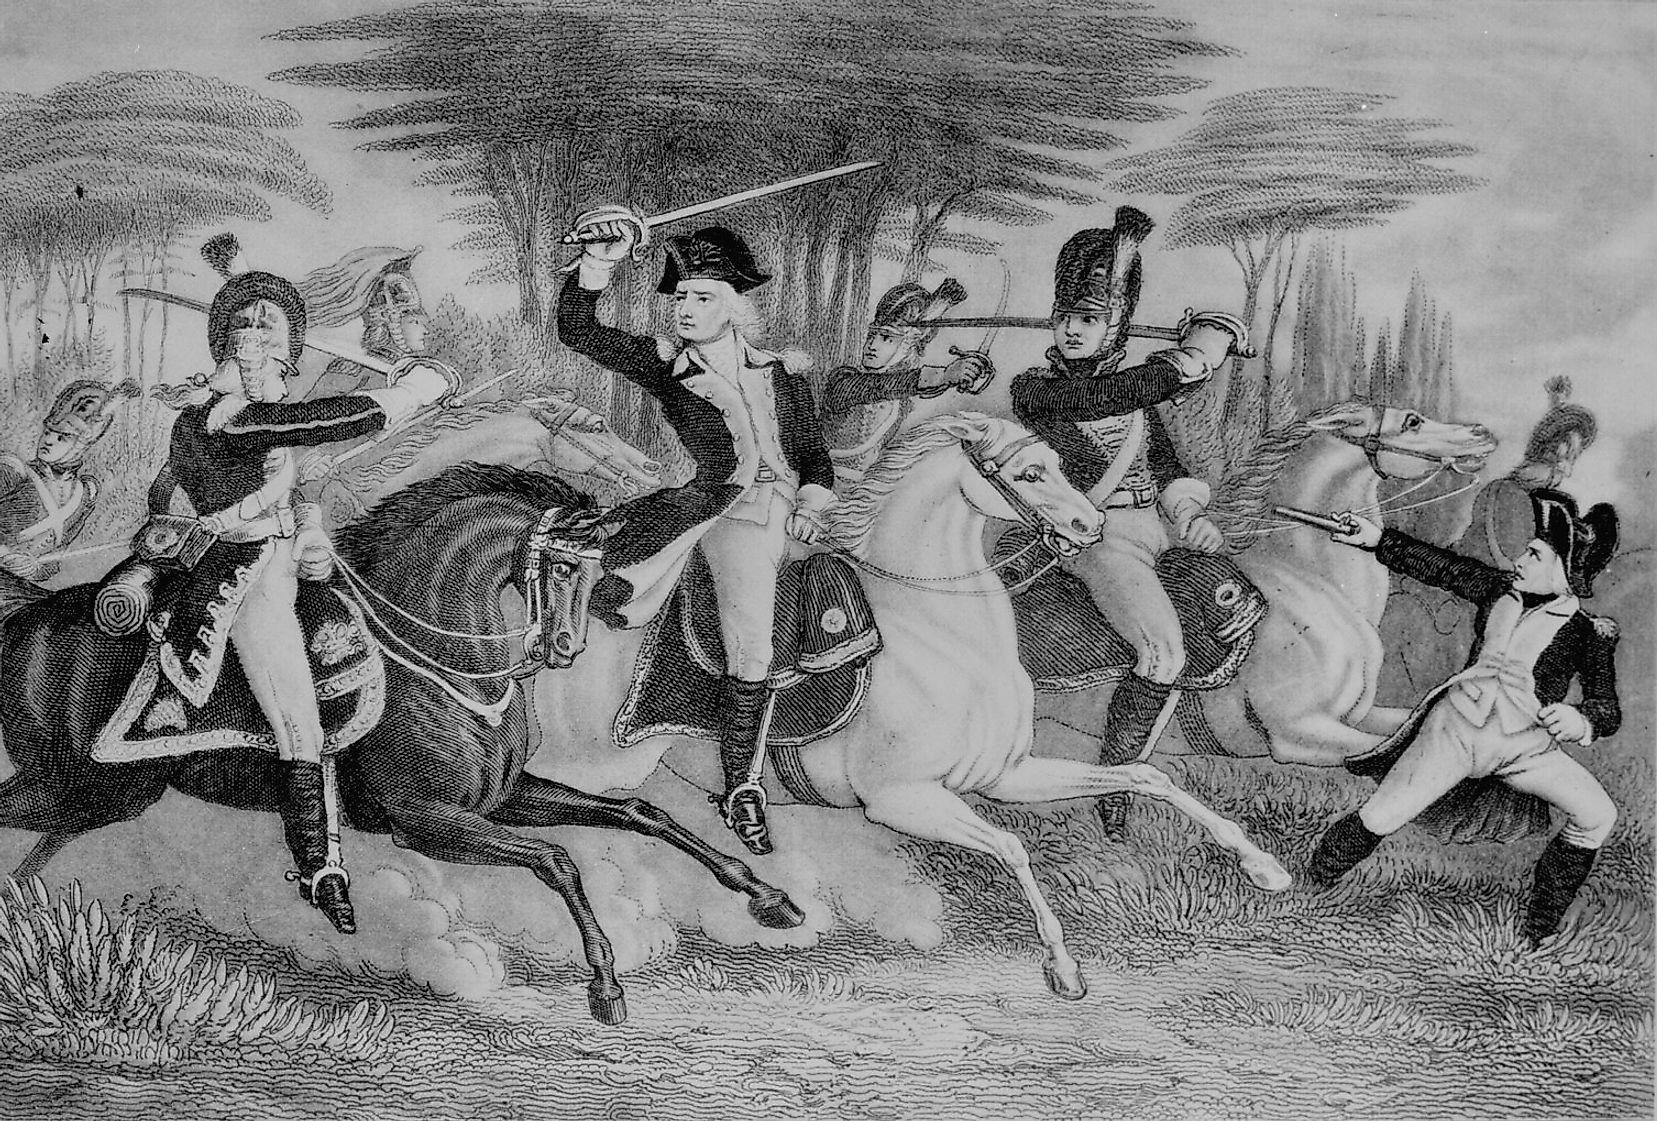 William Washington, the second cousin of George Washington, was one of the officers who helped win this battle in the Carolinas for the Continental Army.